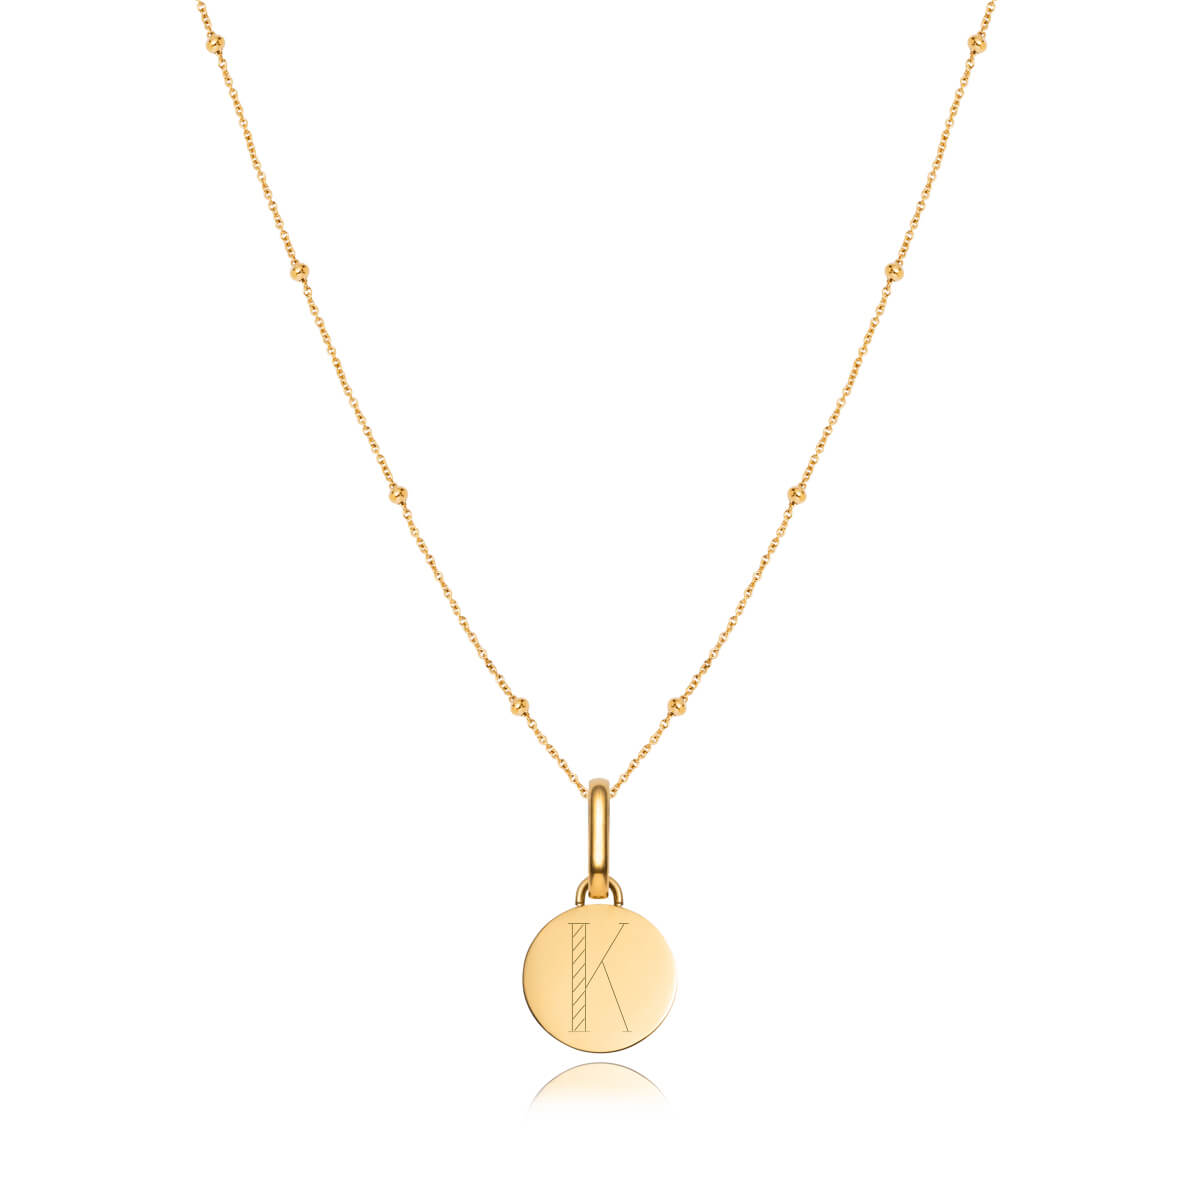 Circular Sphere Chain Necklace 20 in (Gold)